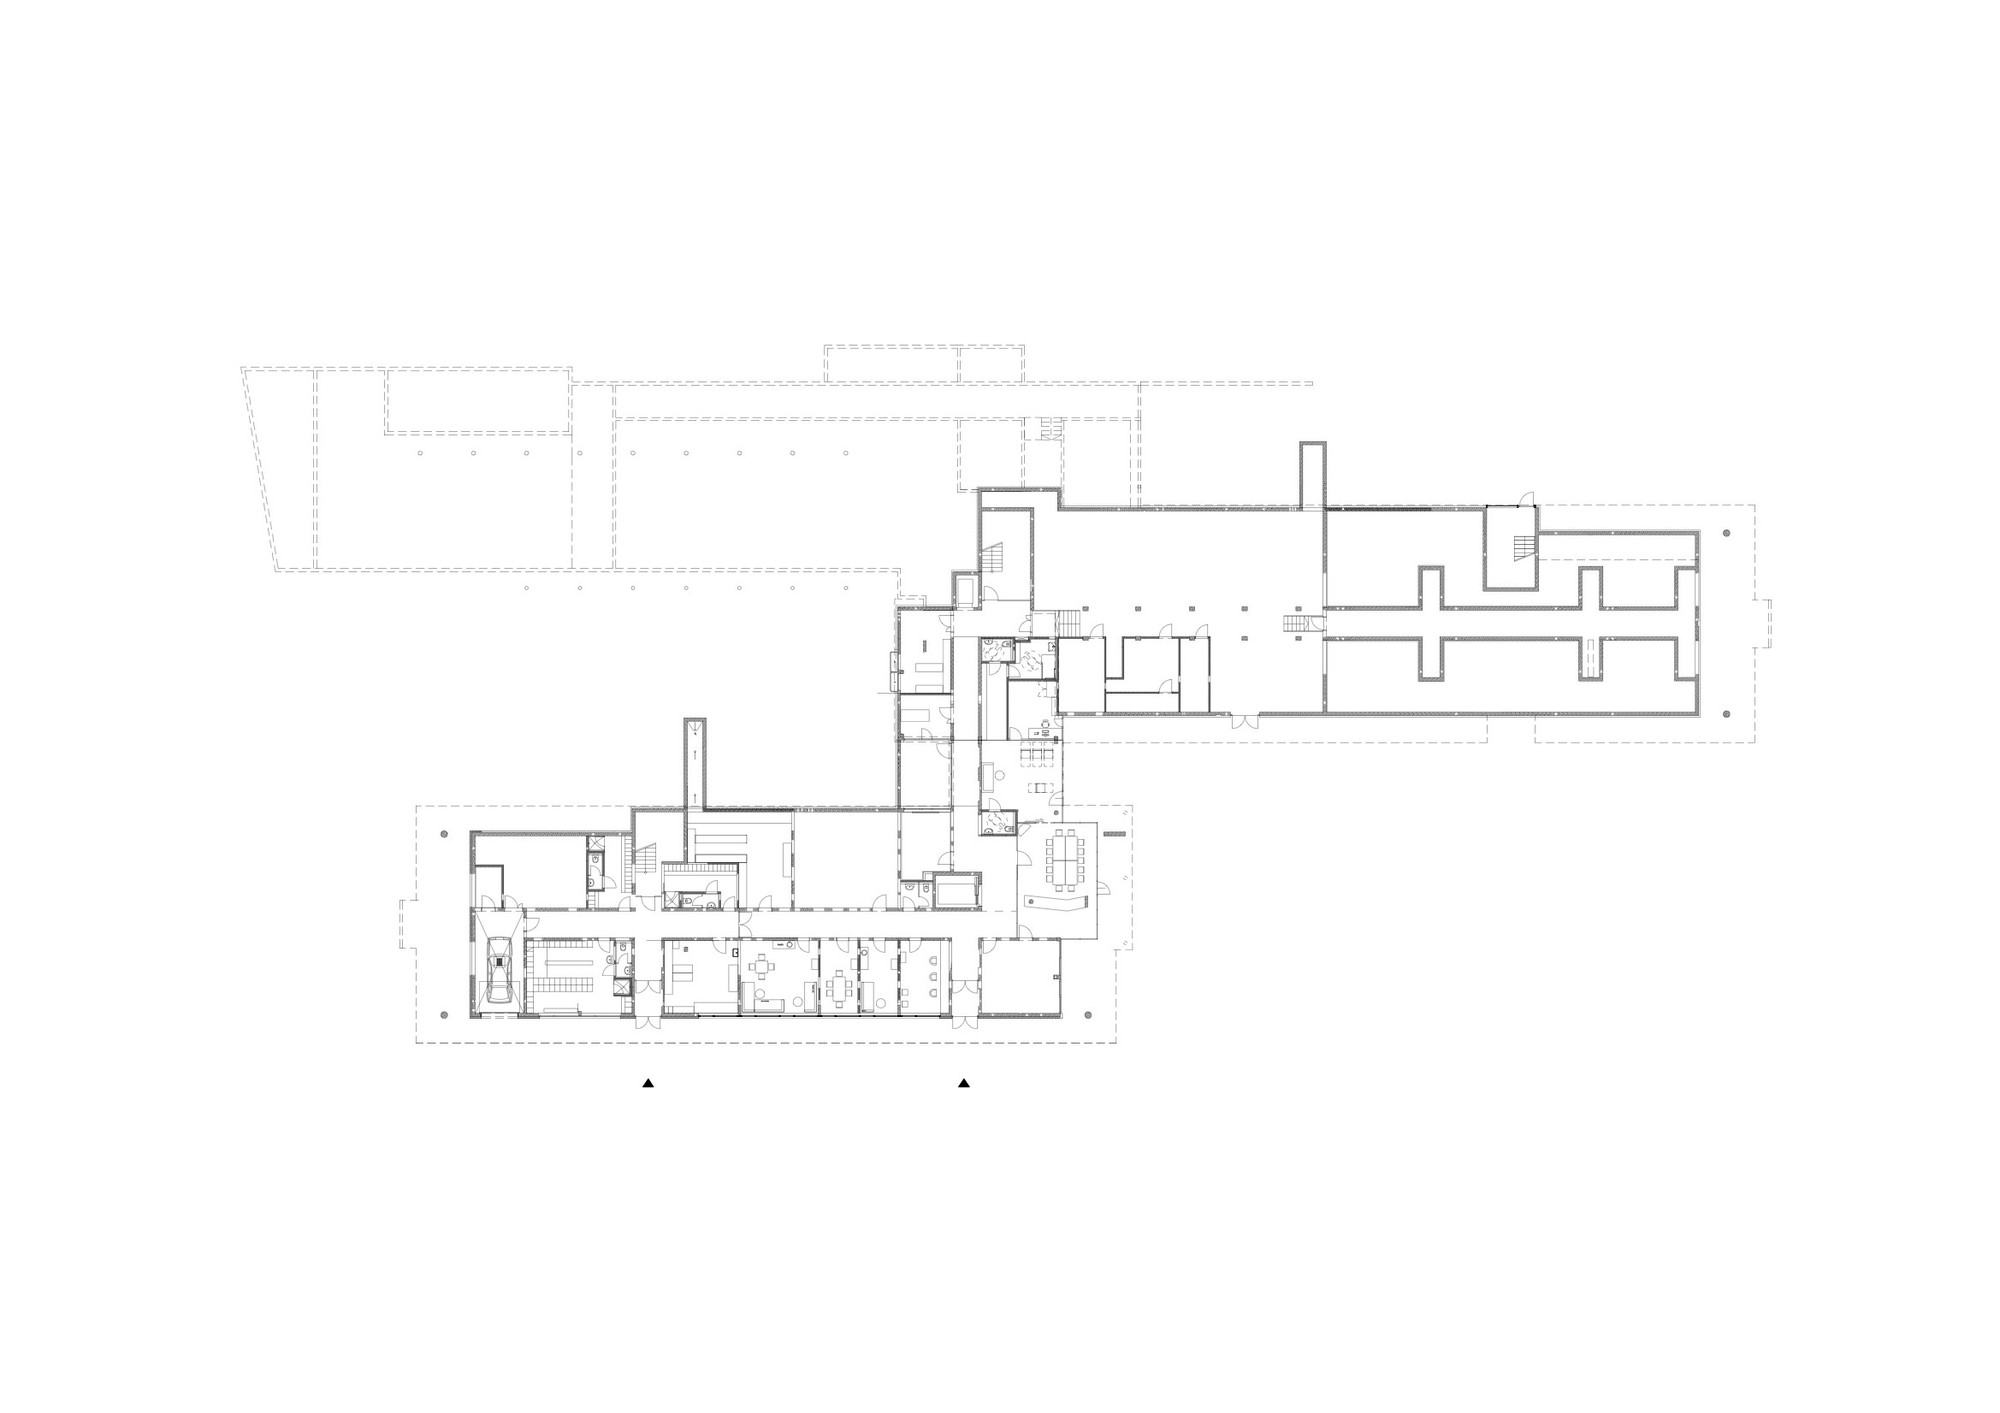 Nursing Home Floor Plans